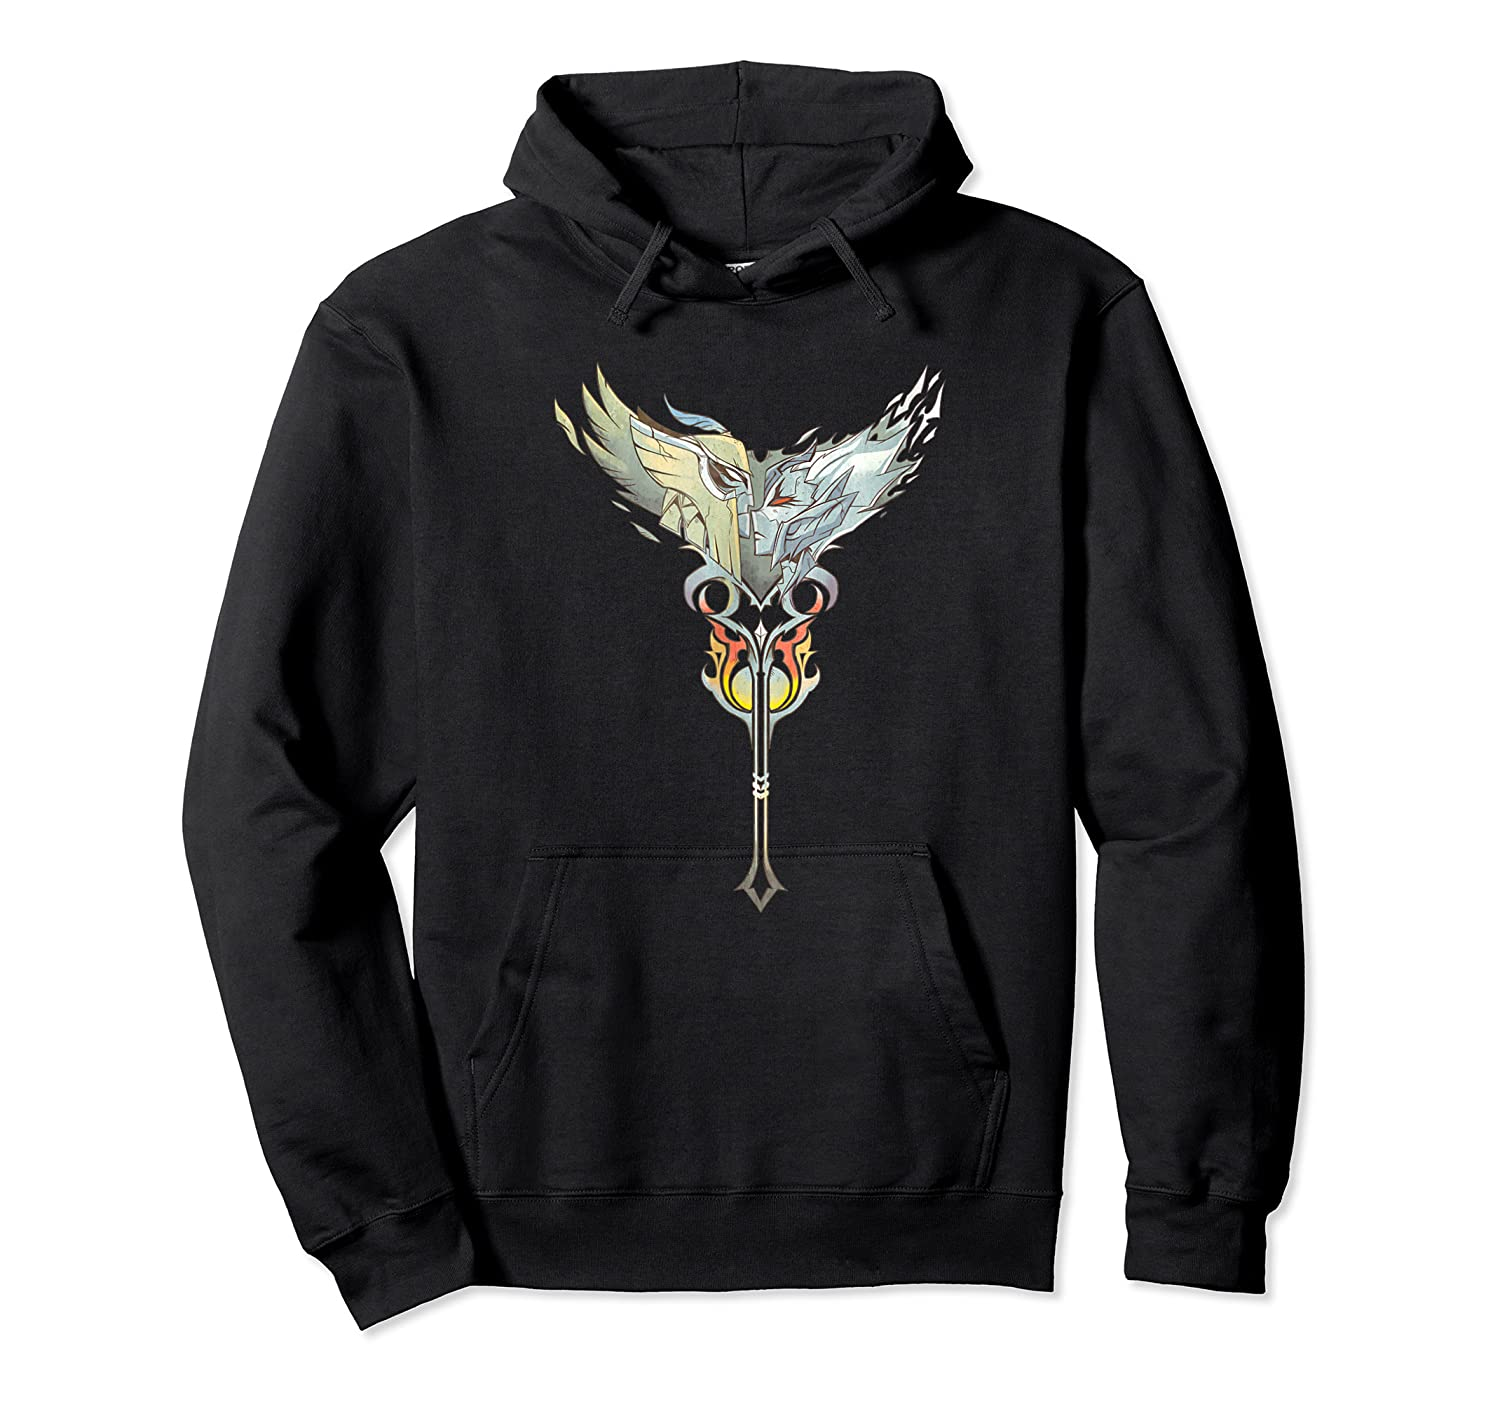 2 Righteous Vengeance Dot456 Shirts Unisex Pullover Hoodie